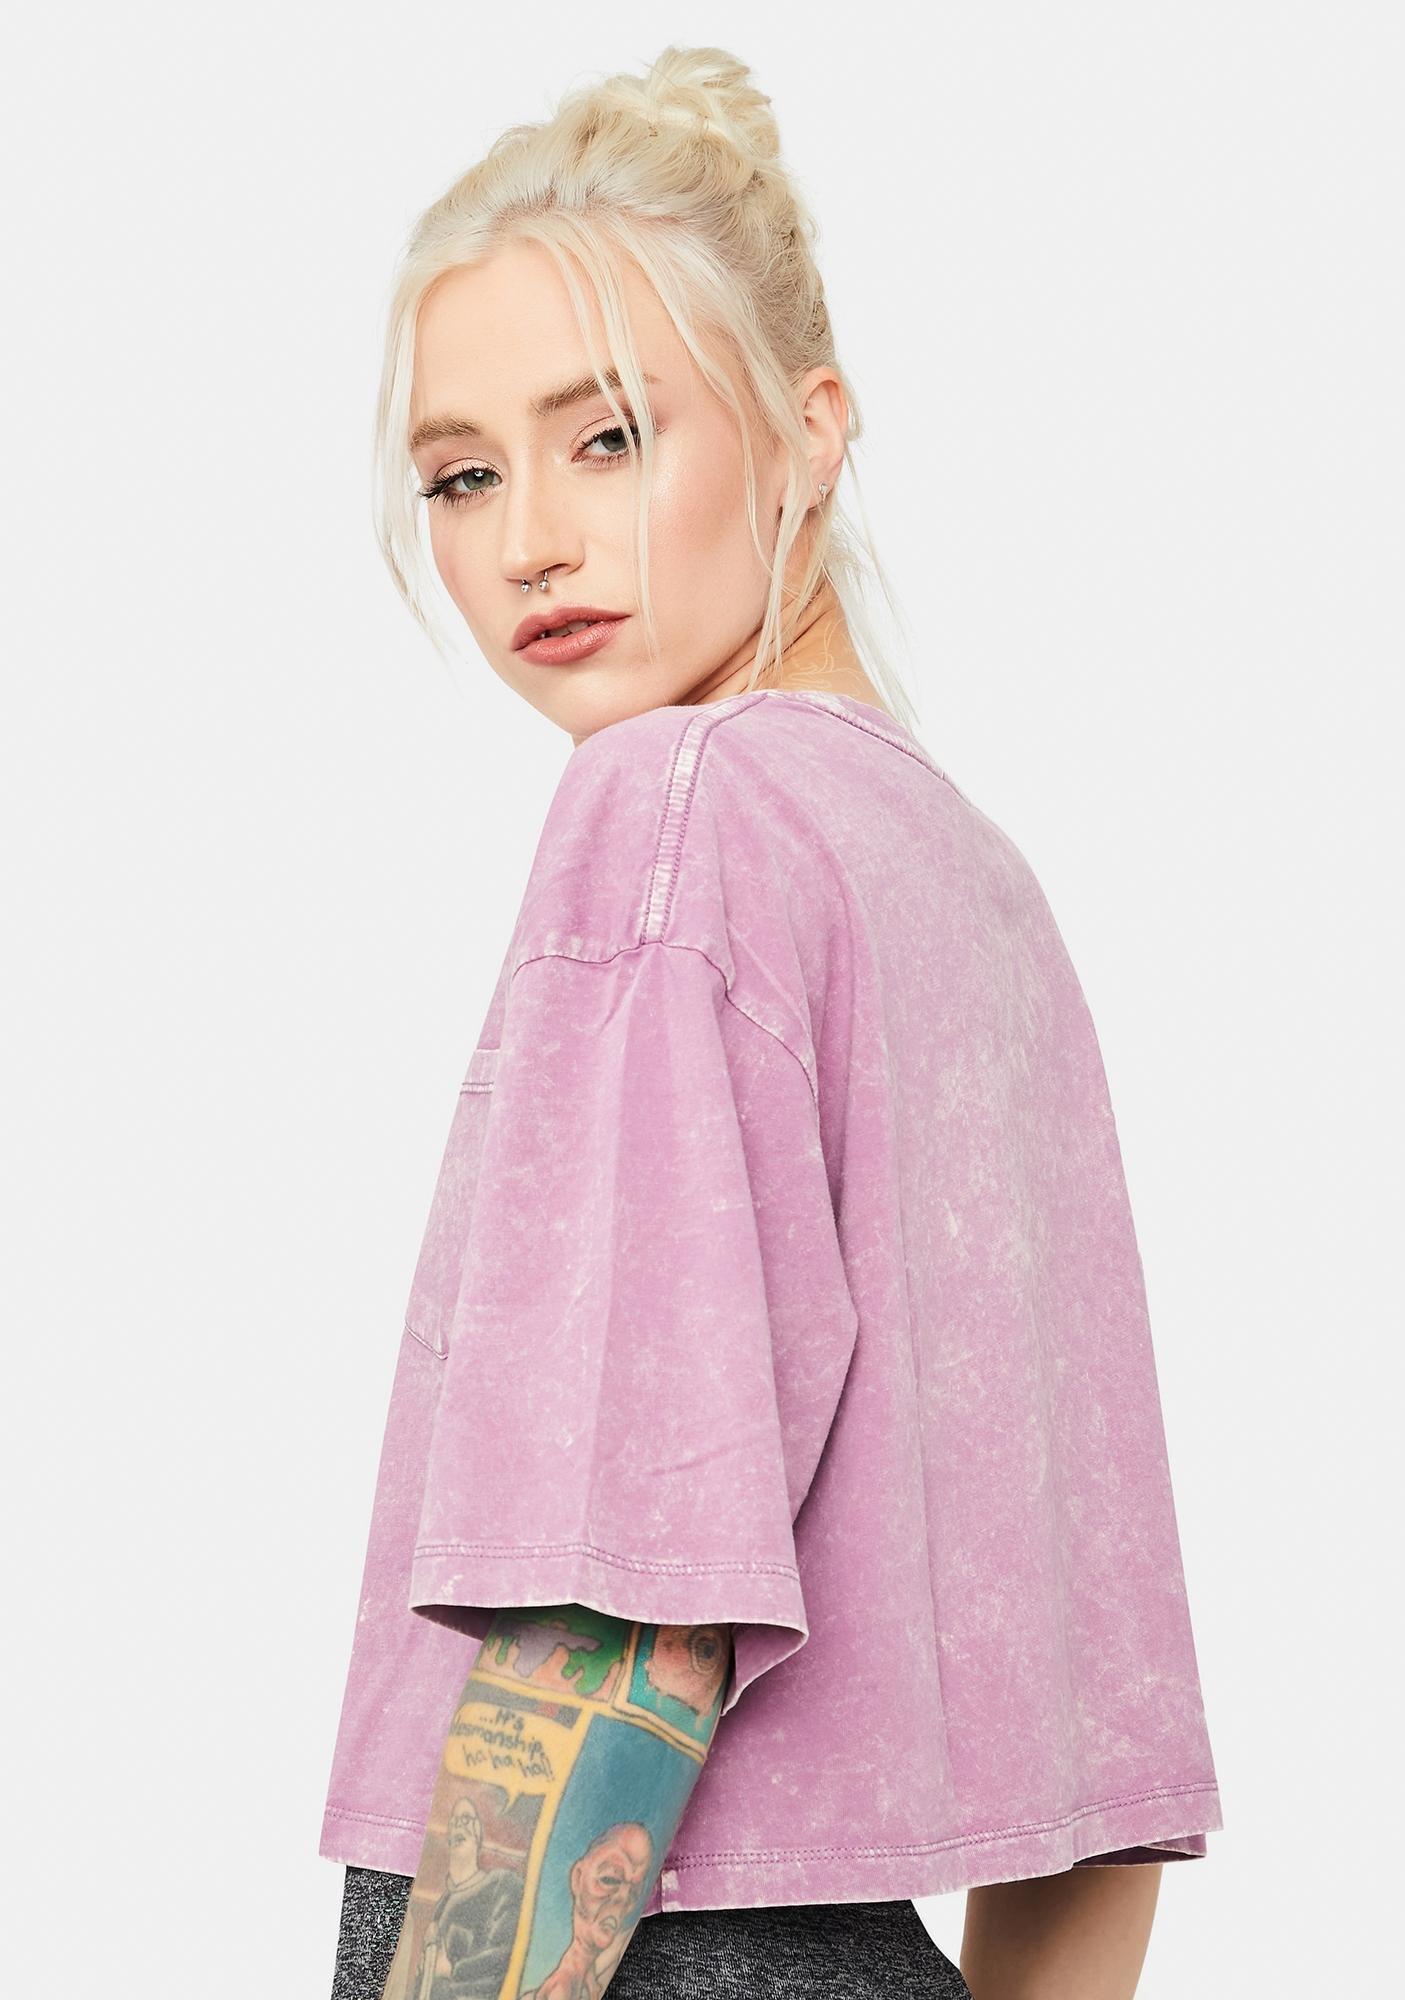 Orchid Grunge Nerves Acid Wash Cropped Pocket Tee